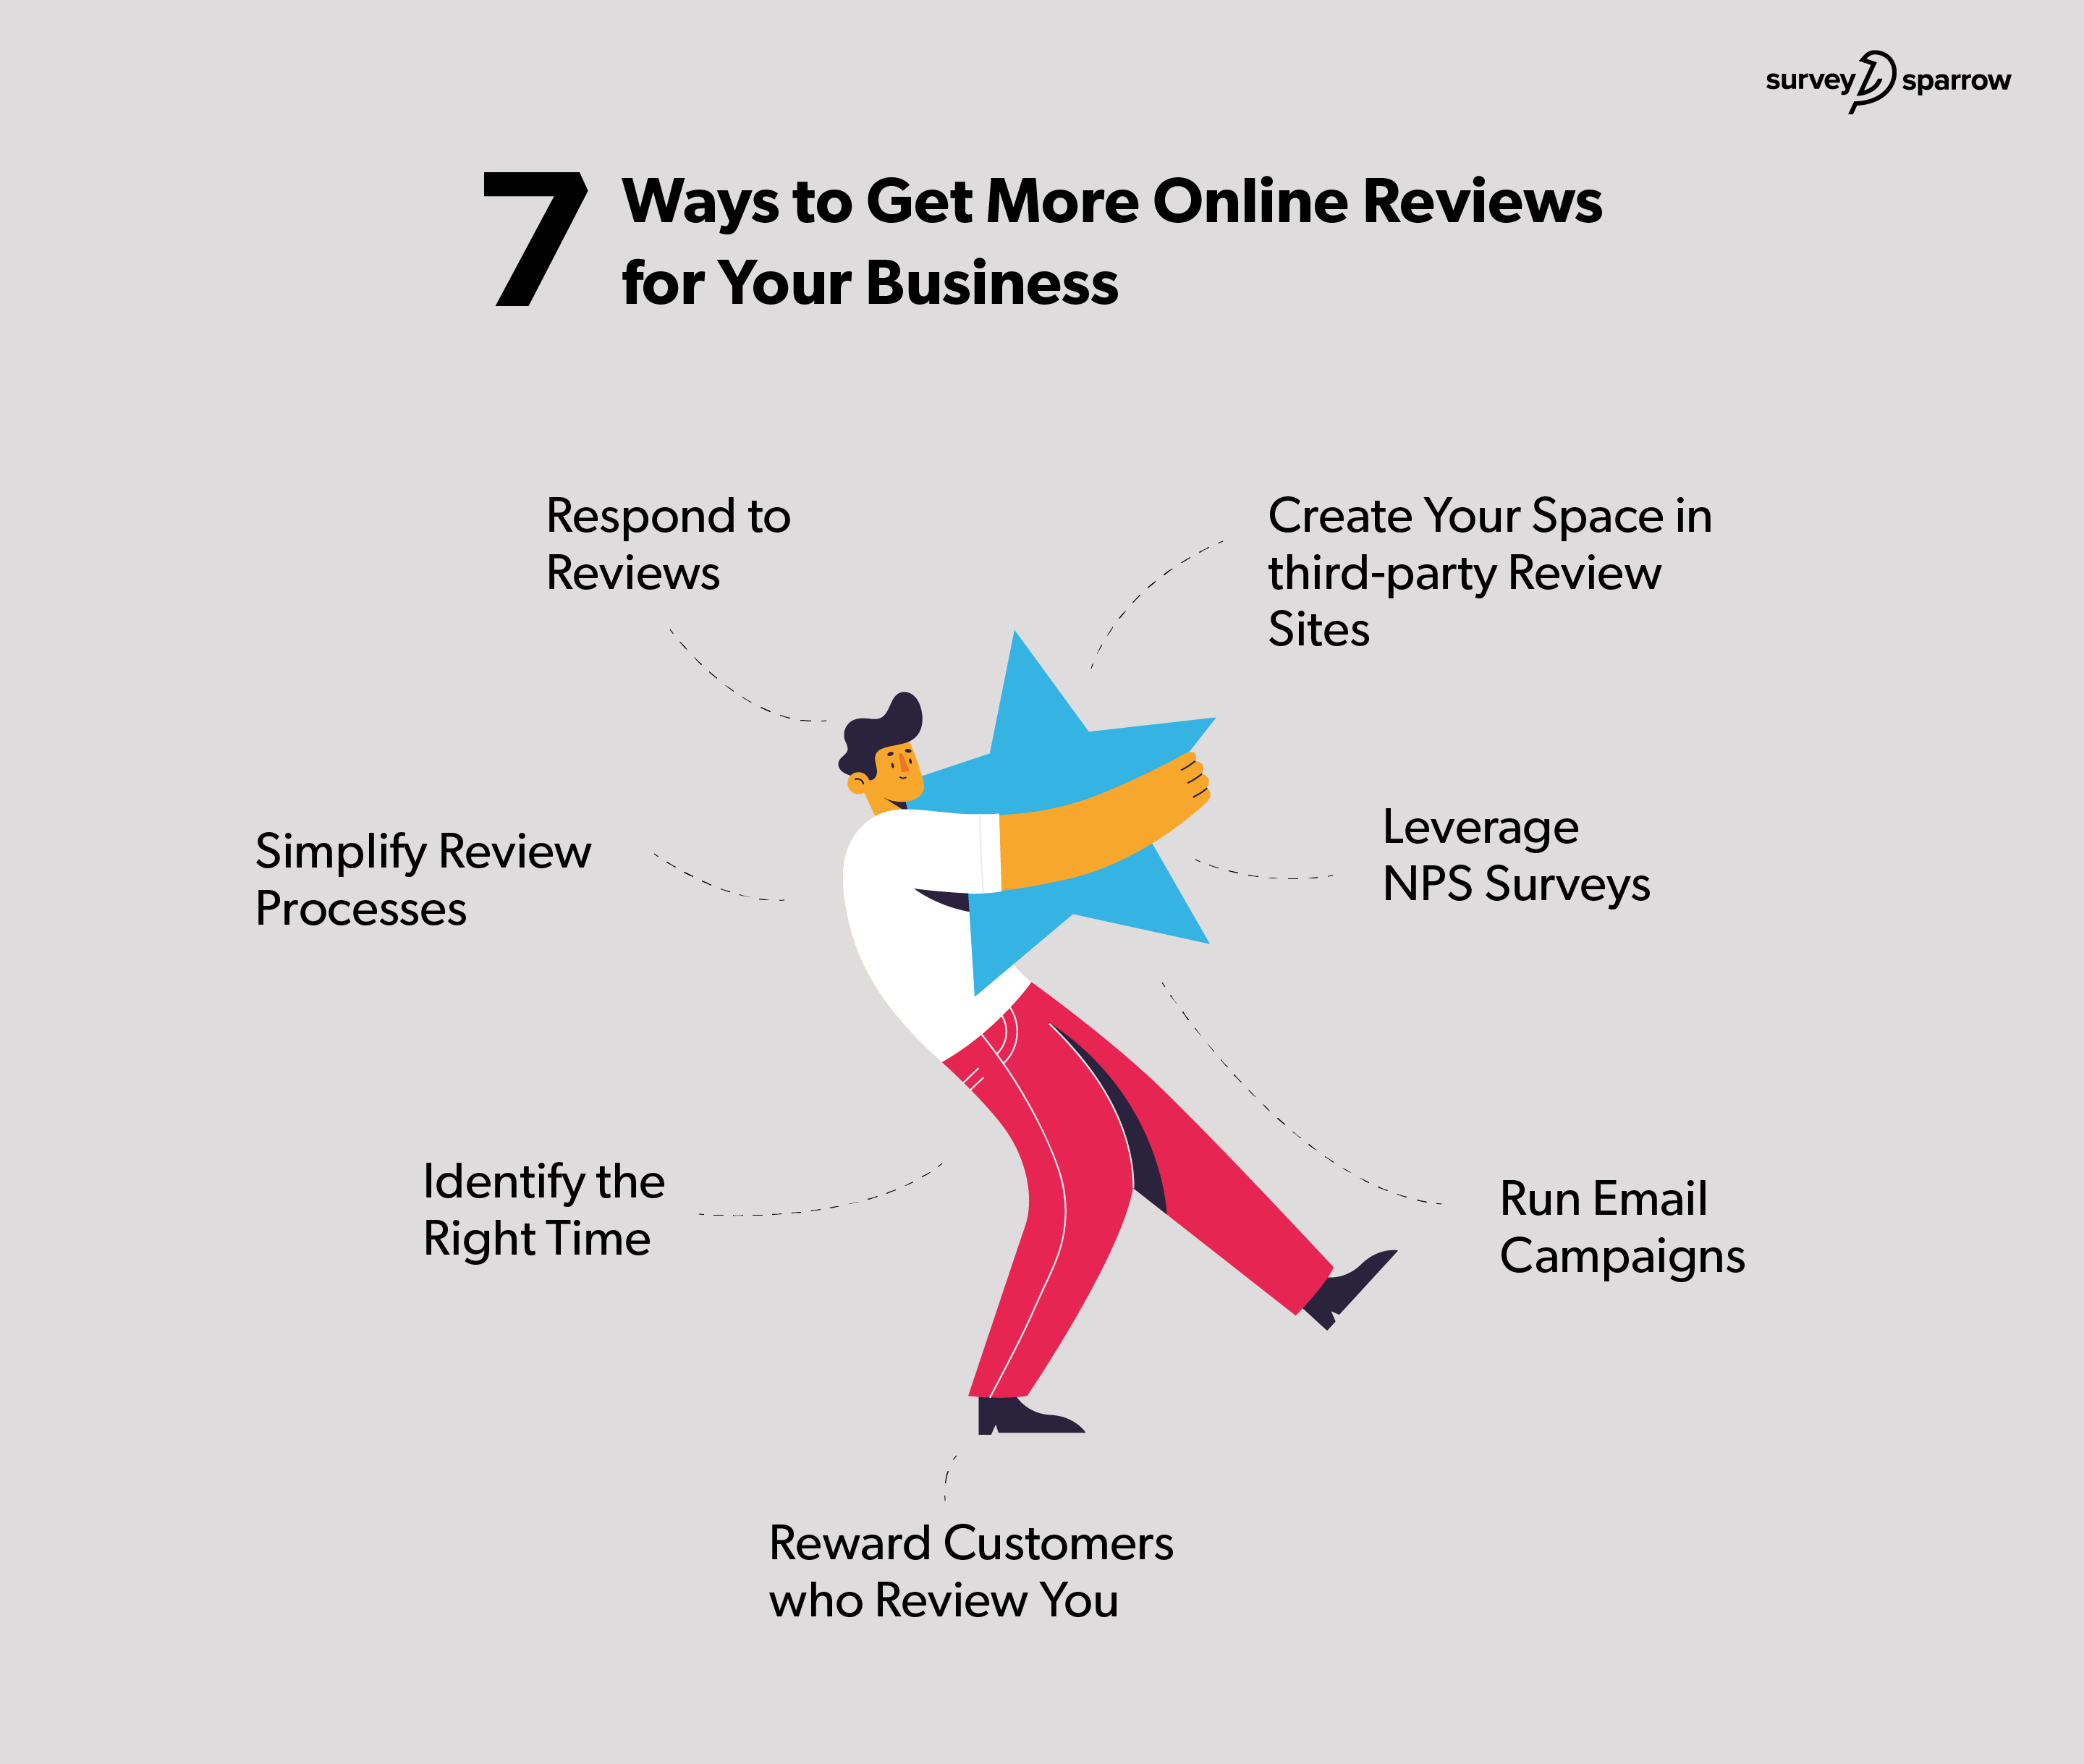 7 Simple Ways to Get More Reviews.